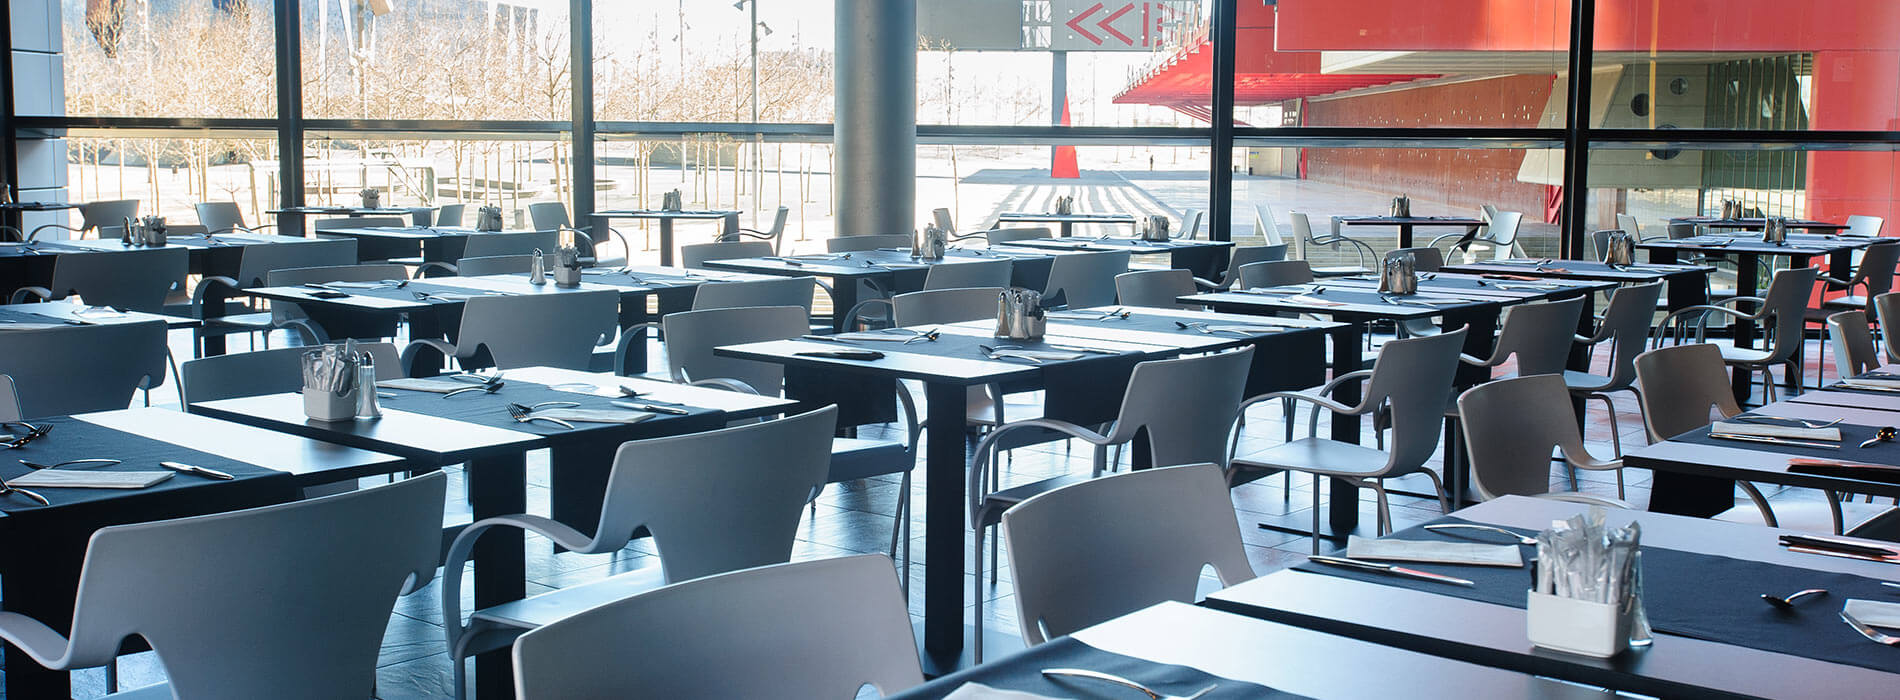 Restaurante N1 Hotel Barcelona Princess